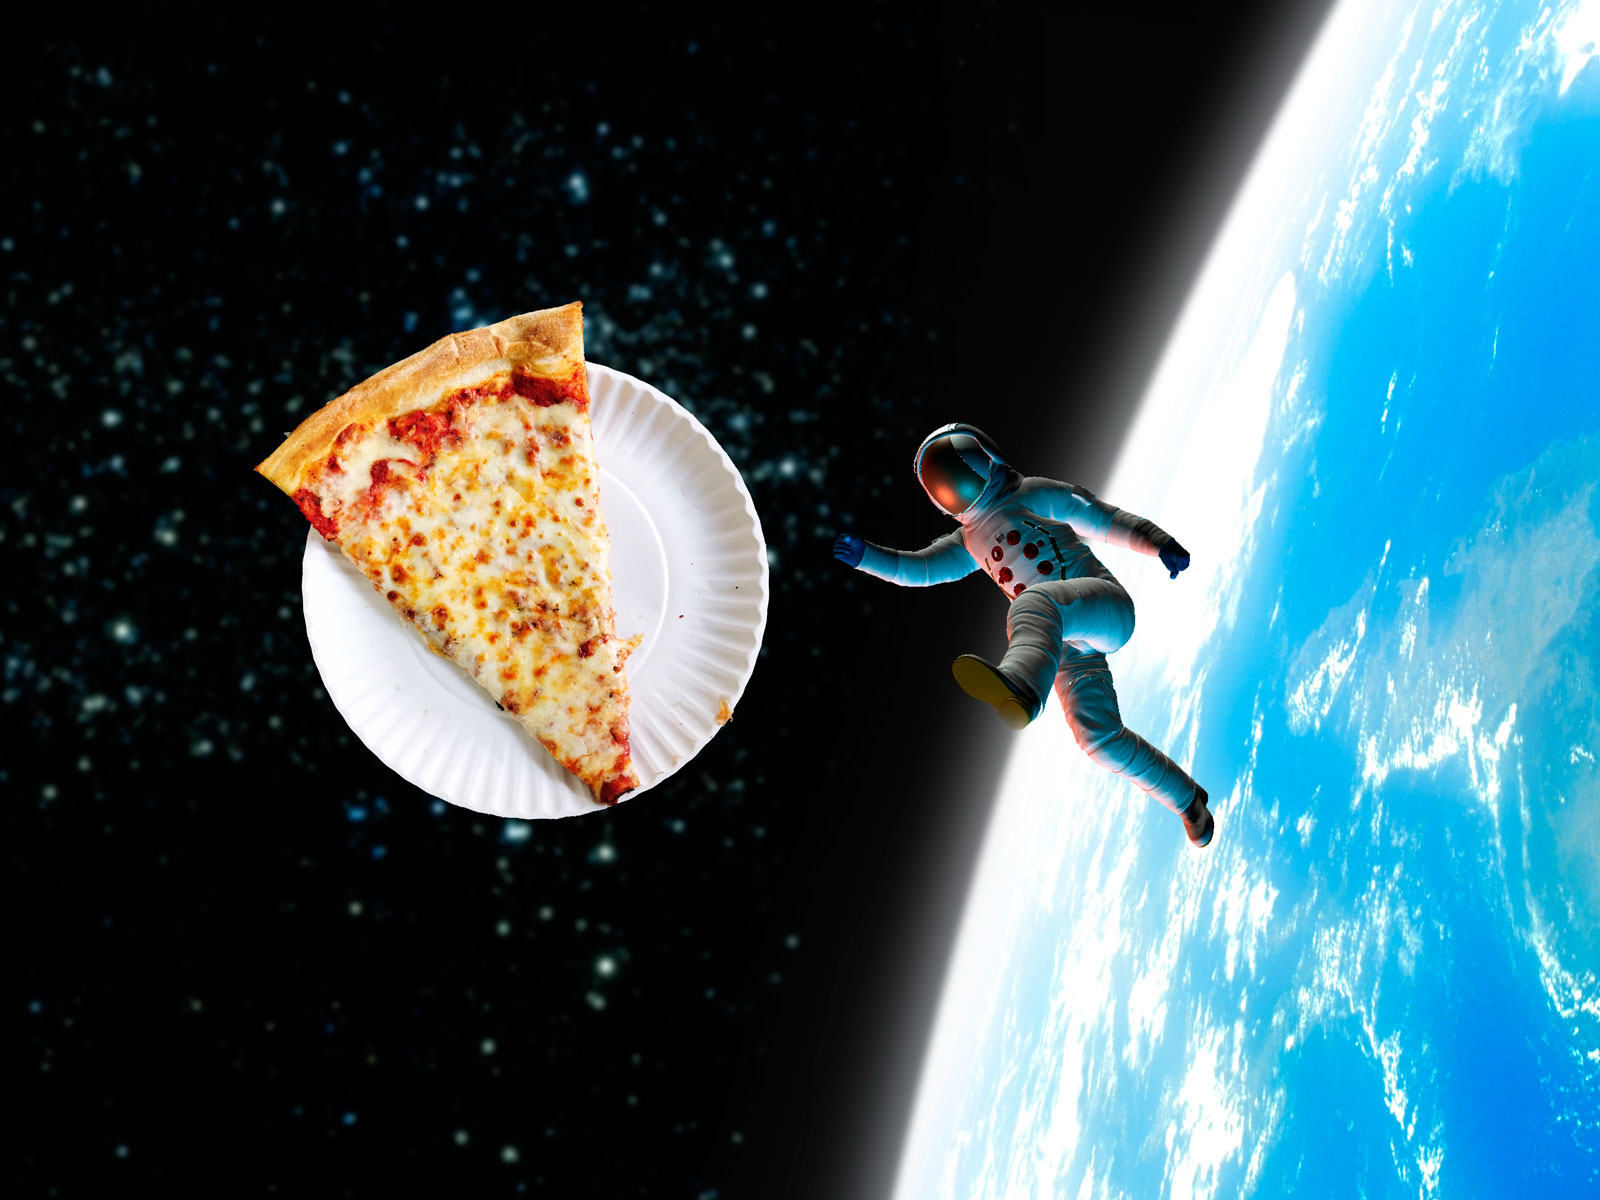 This Astronaut Ordered Pizza From a Space Shuttle